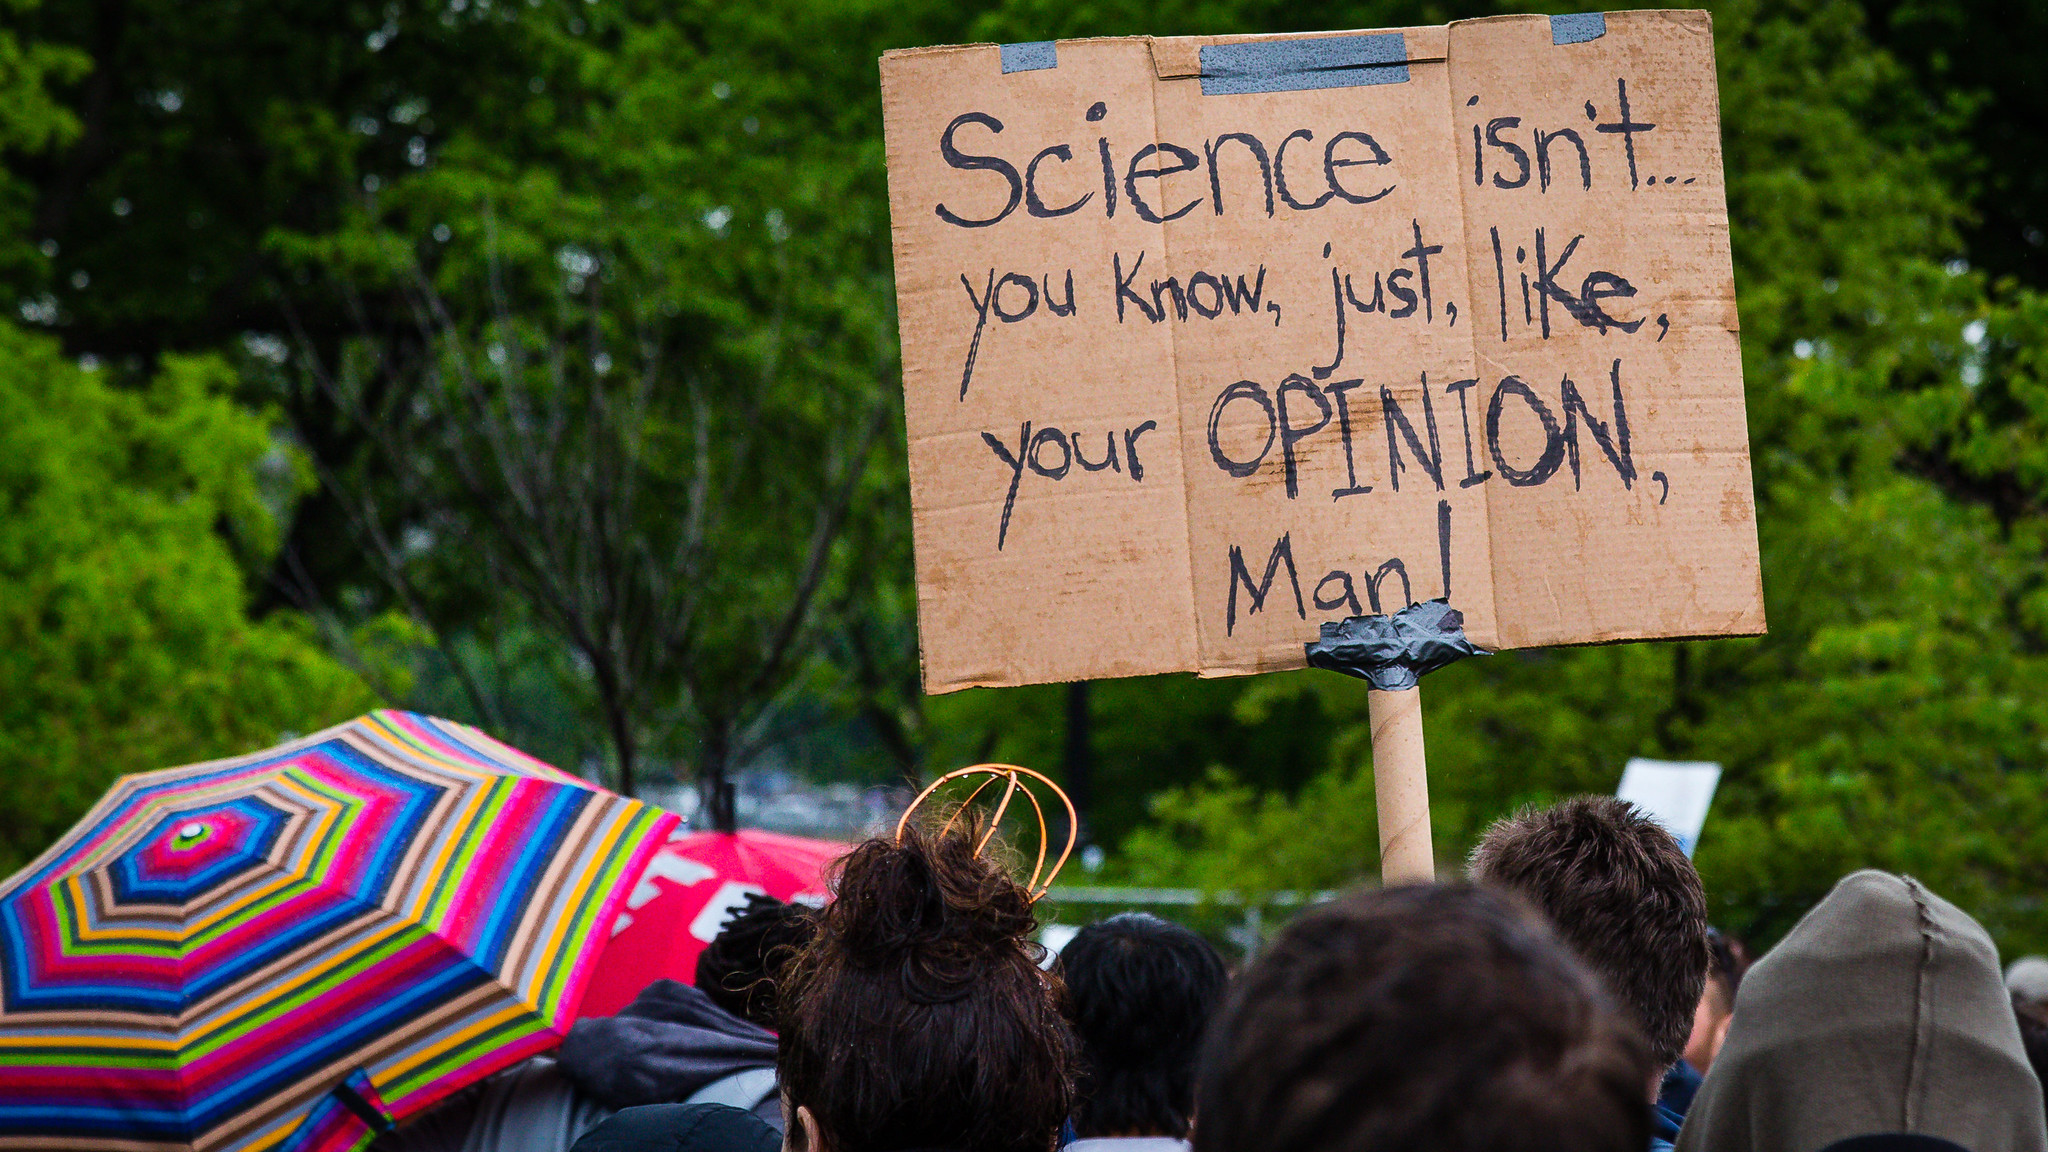 March for Science Not Opinion